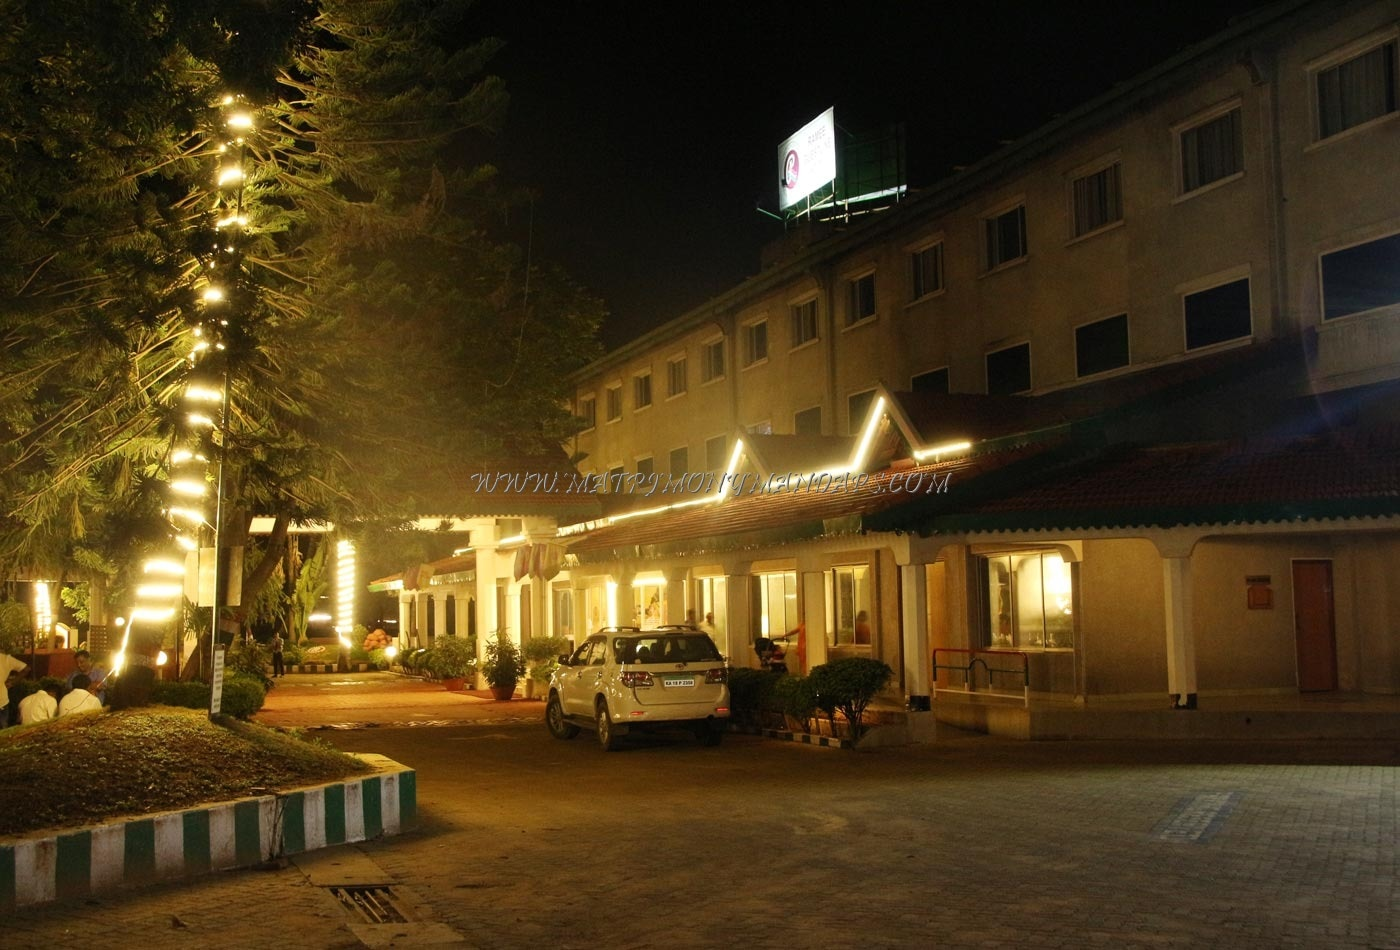 Dialogue Ramee Guestline Hotels And Resorts - Outside View